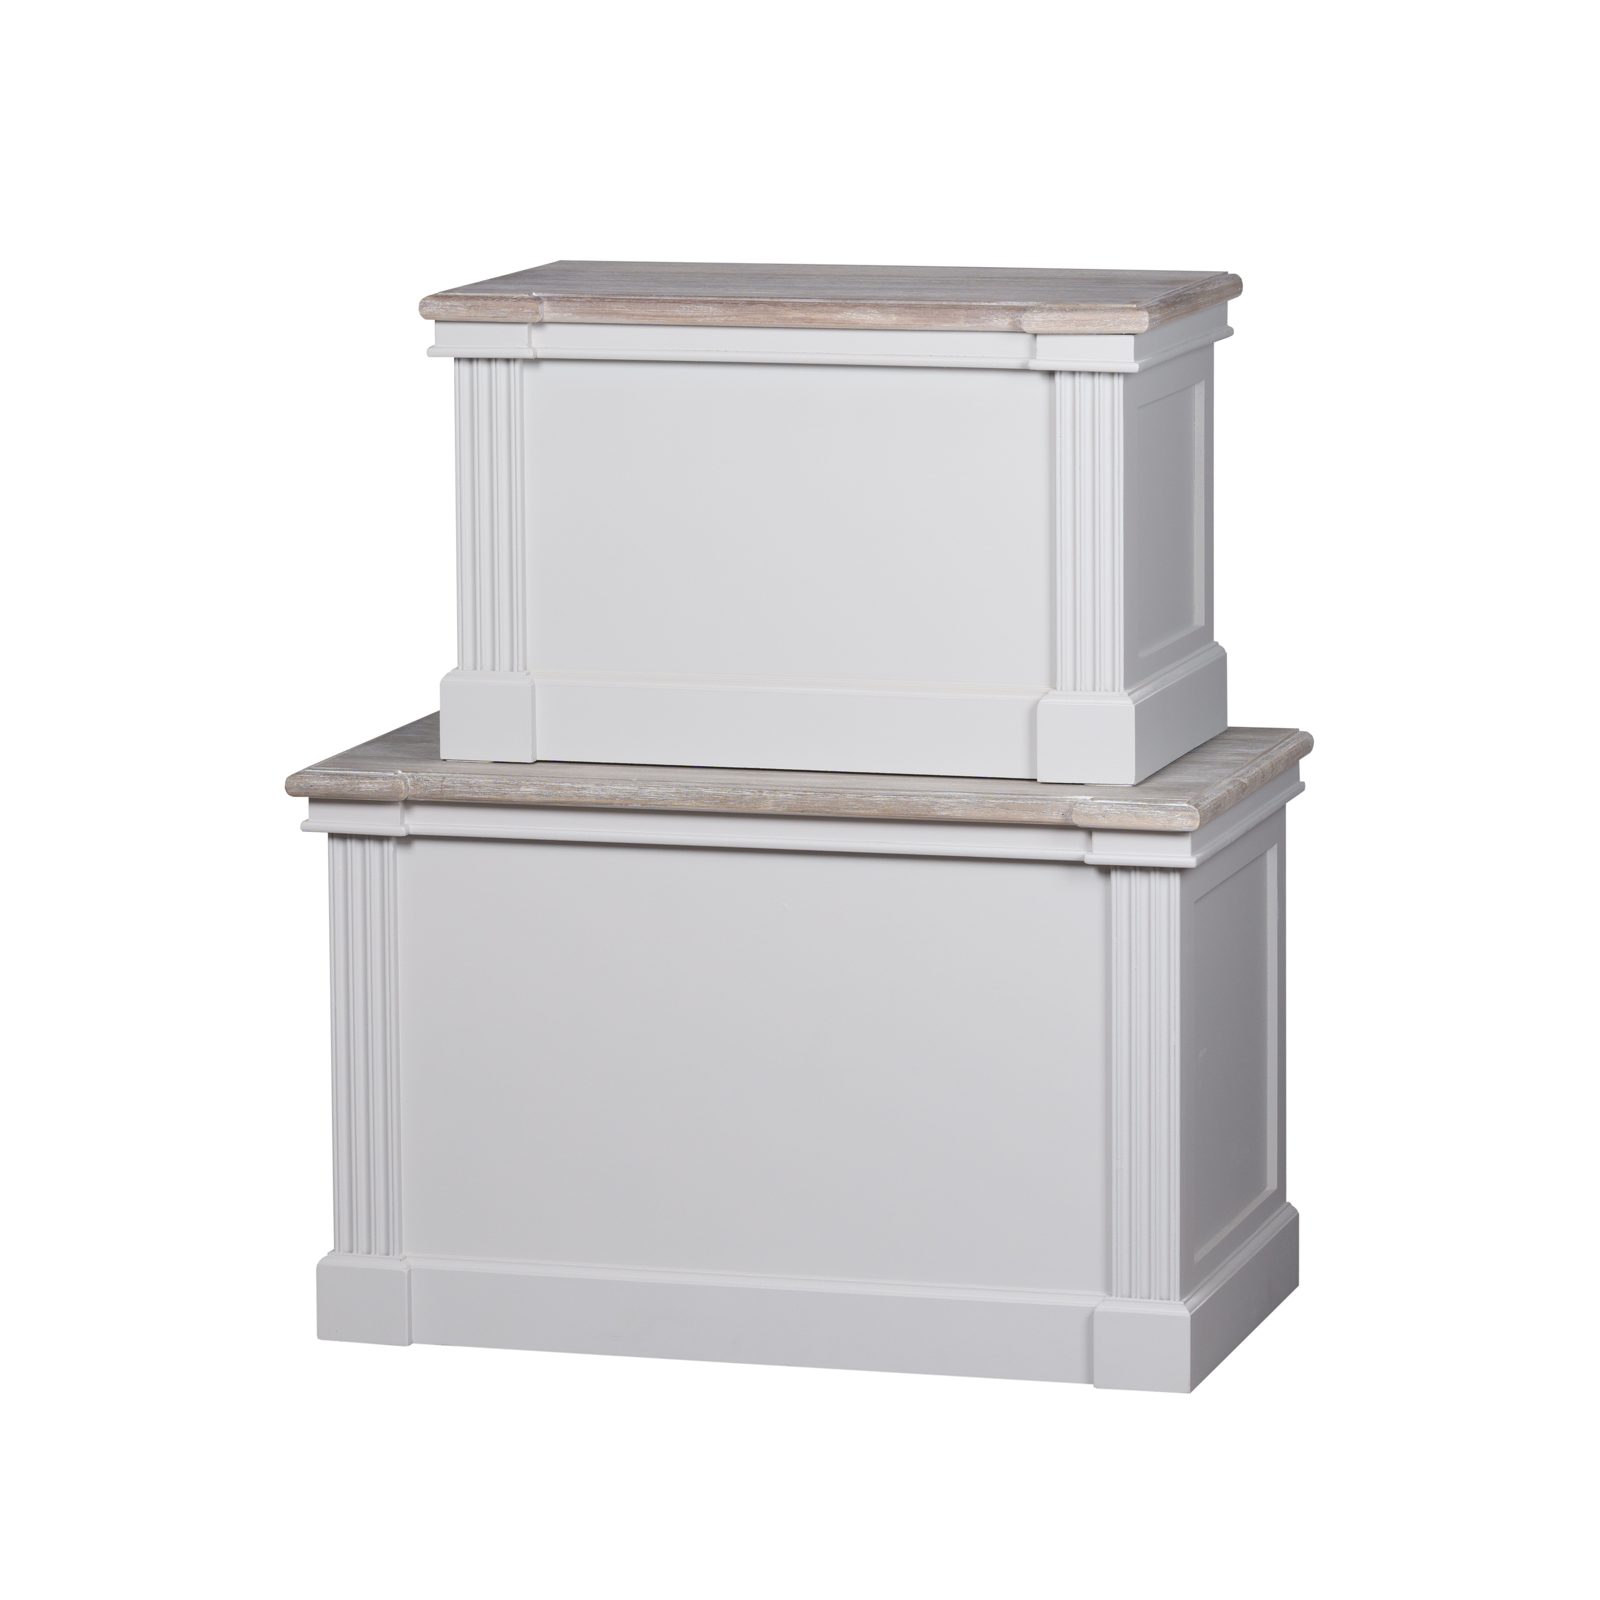 The Liberty Collection Set Of Two Blanket Boxes